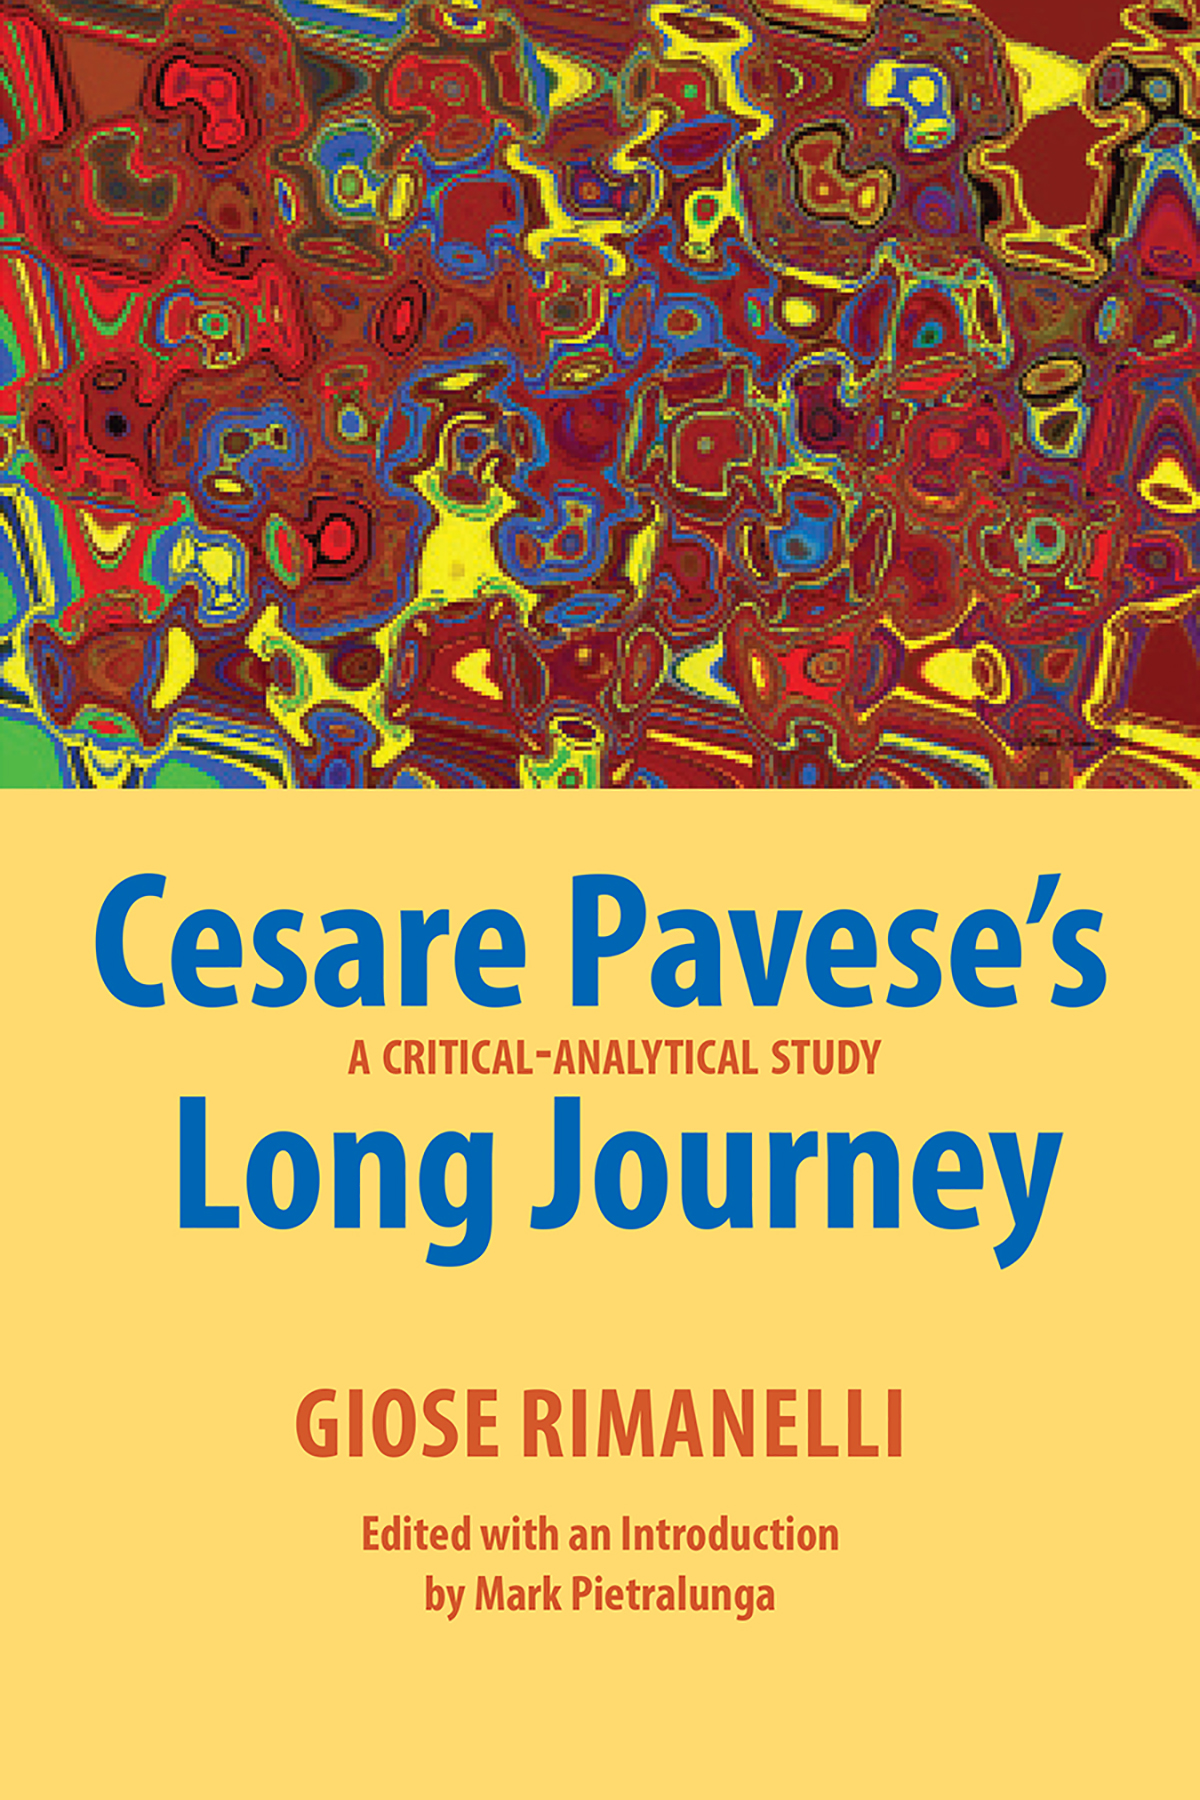 Cesare Pavese's Long Journey: A Critical-Analytical Study